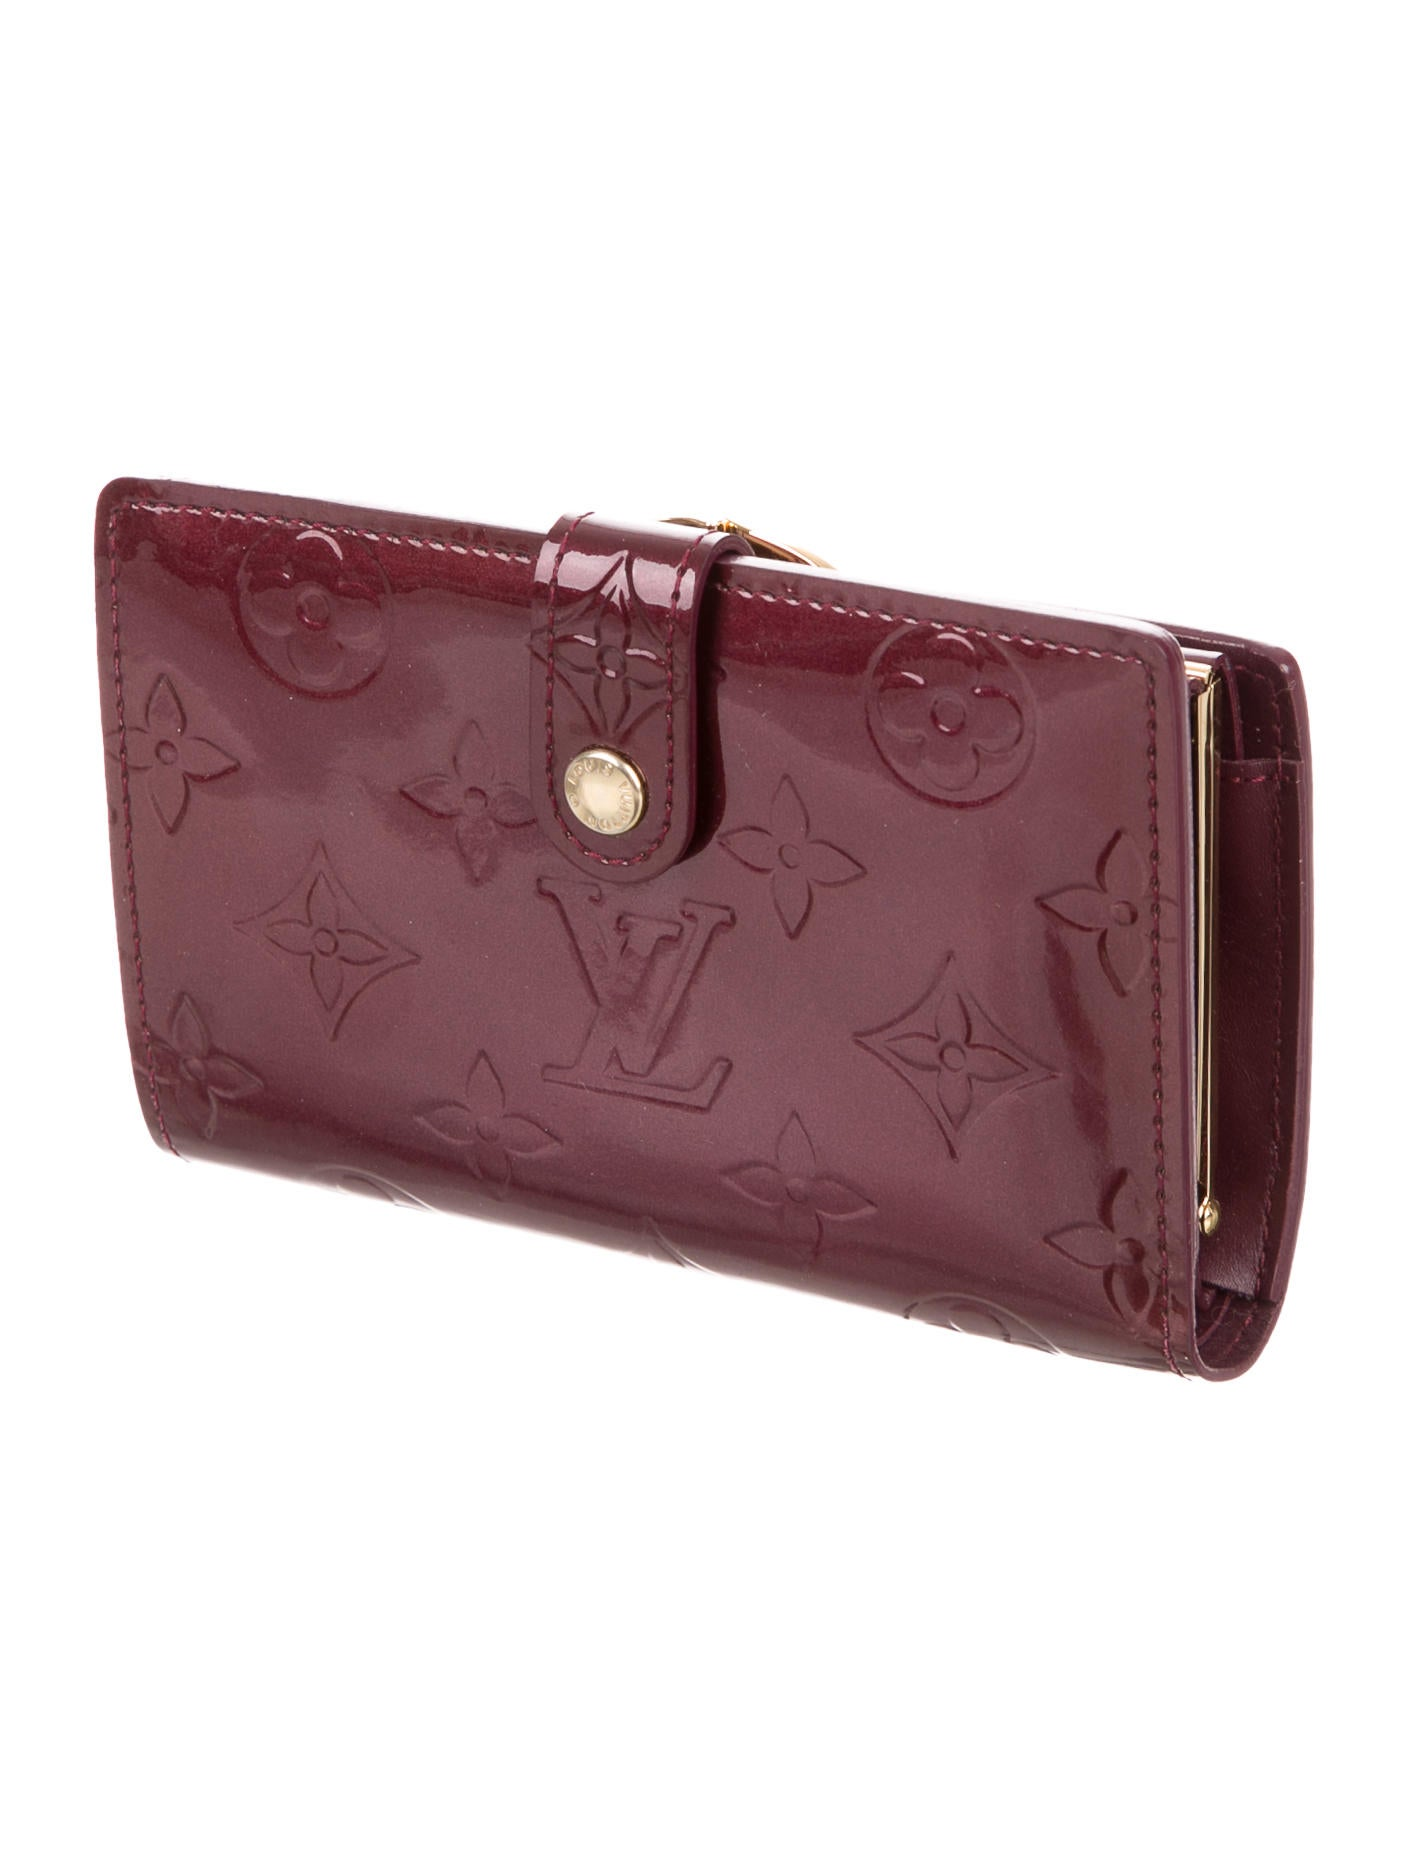 c6976d552 Louis Vuitton Vernis French Purse Wallet - Accessories - LOU112091 | The  RealReal